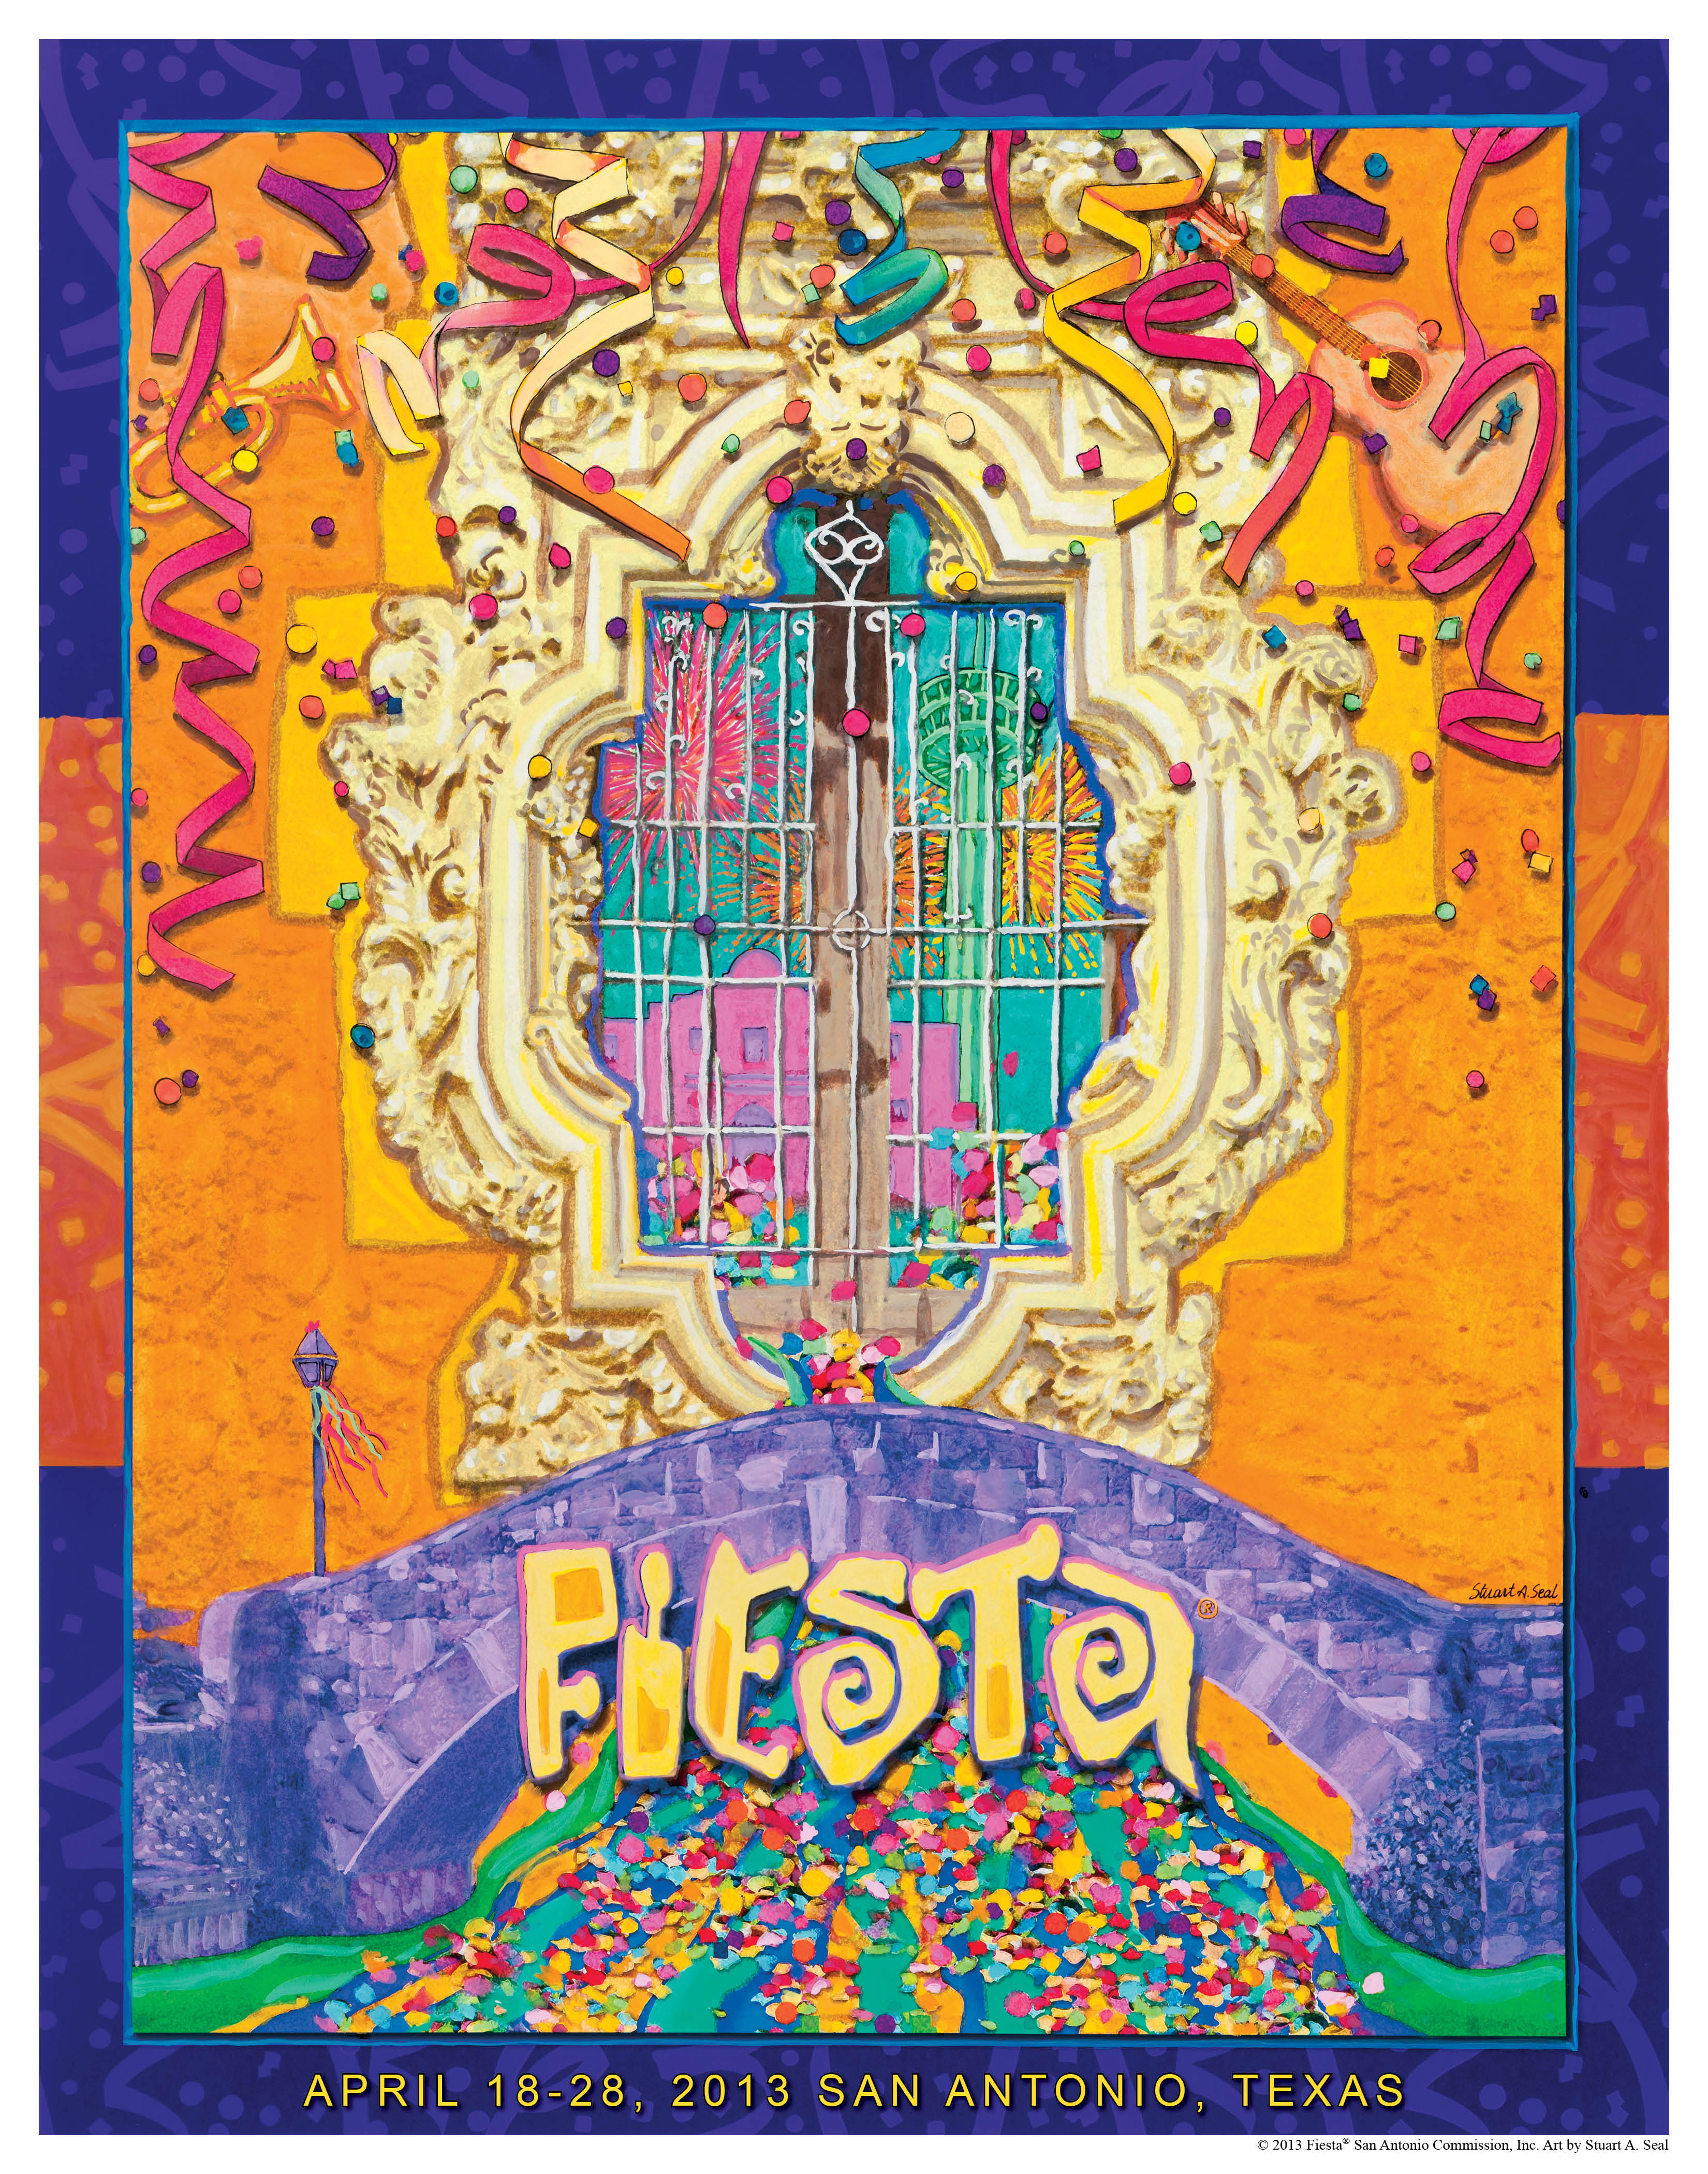 Fiesta 2013 Poster 'Celebrates Culture, History and Spirit' of Event